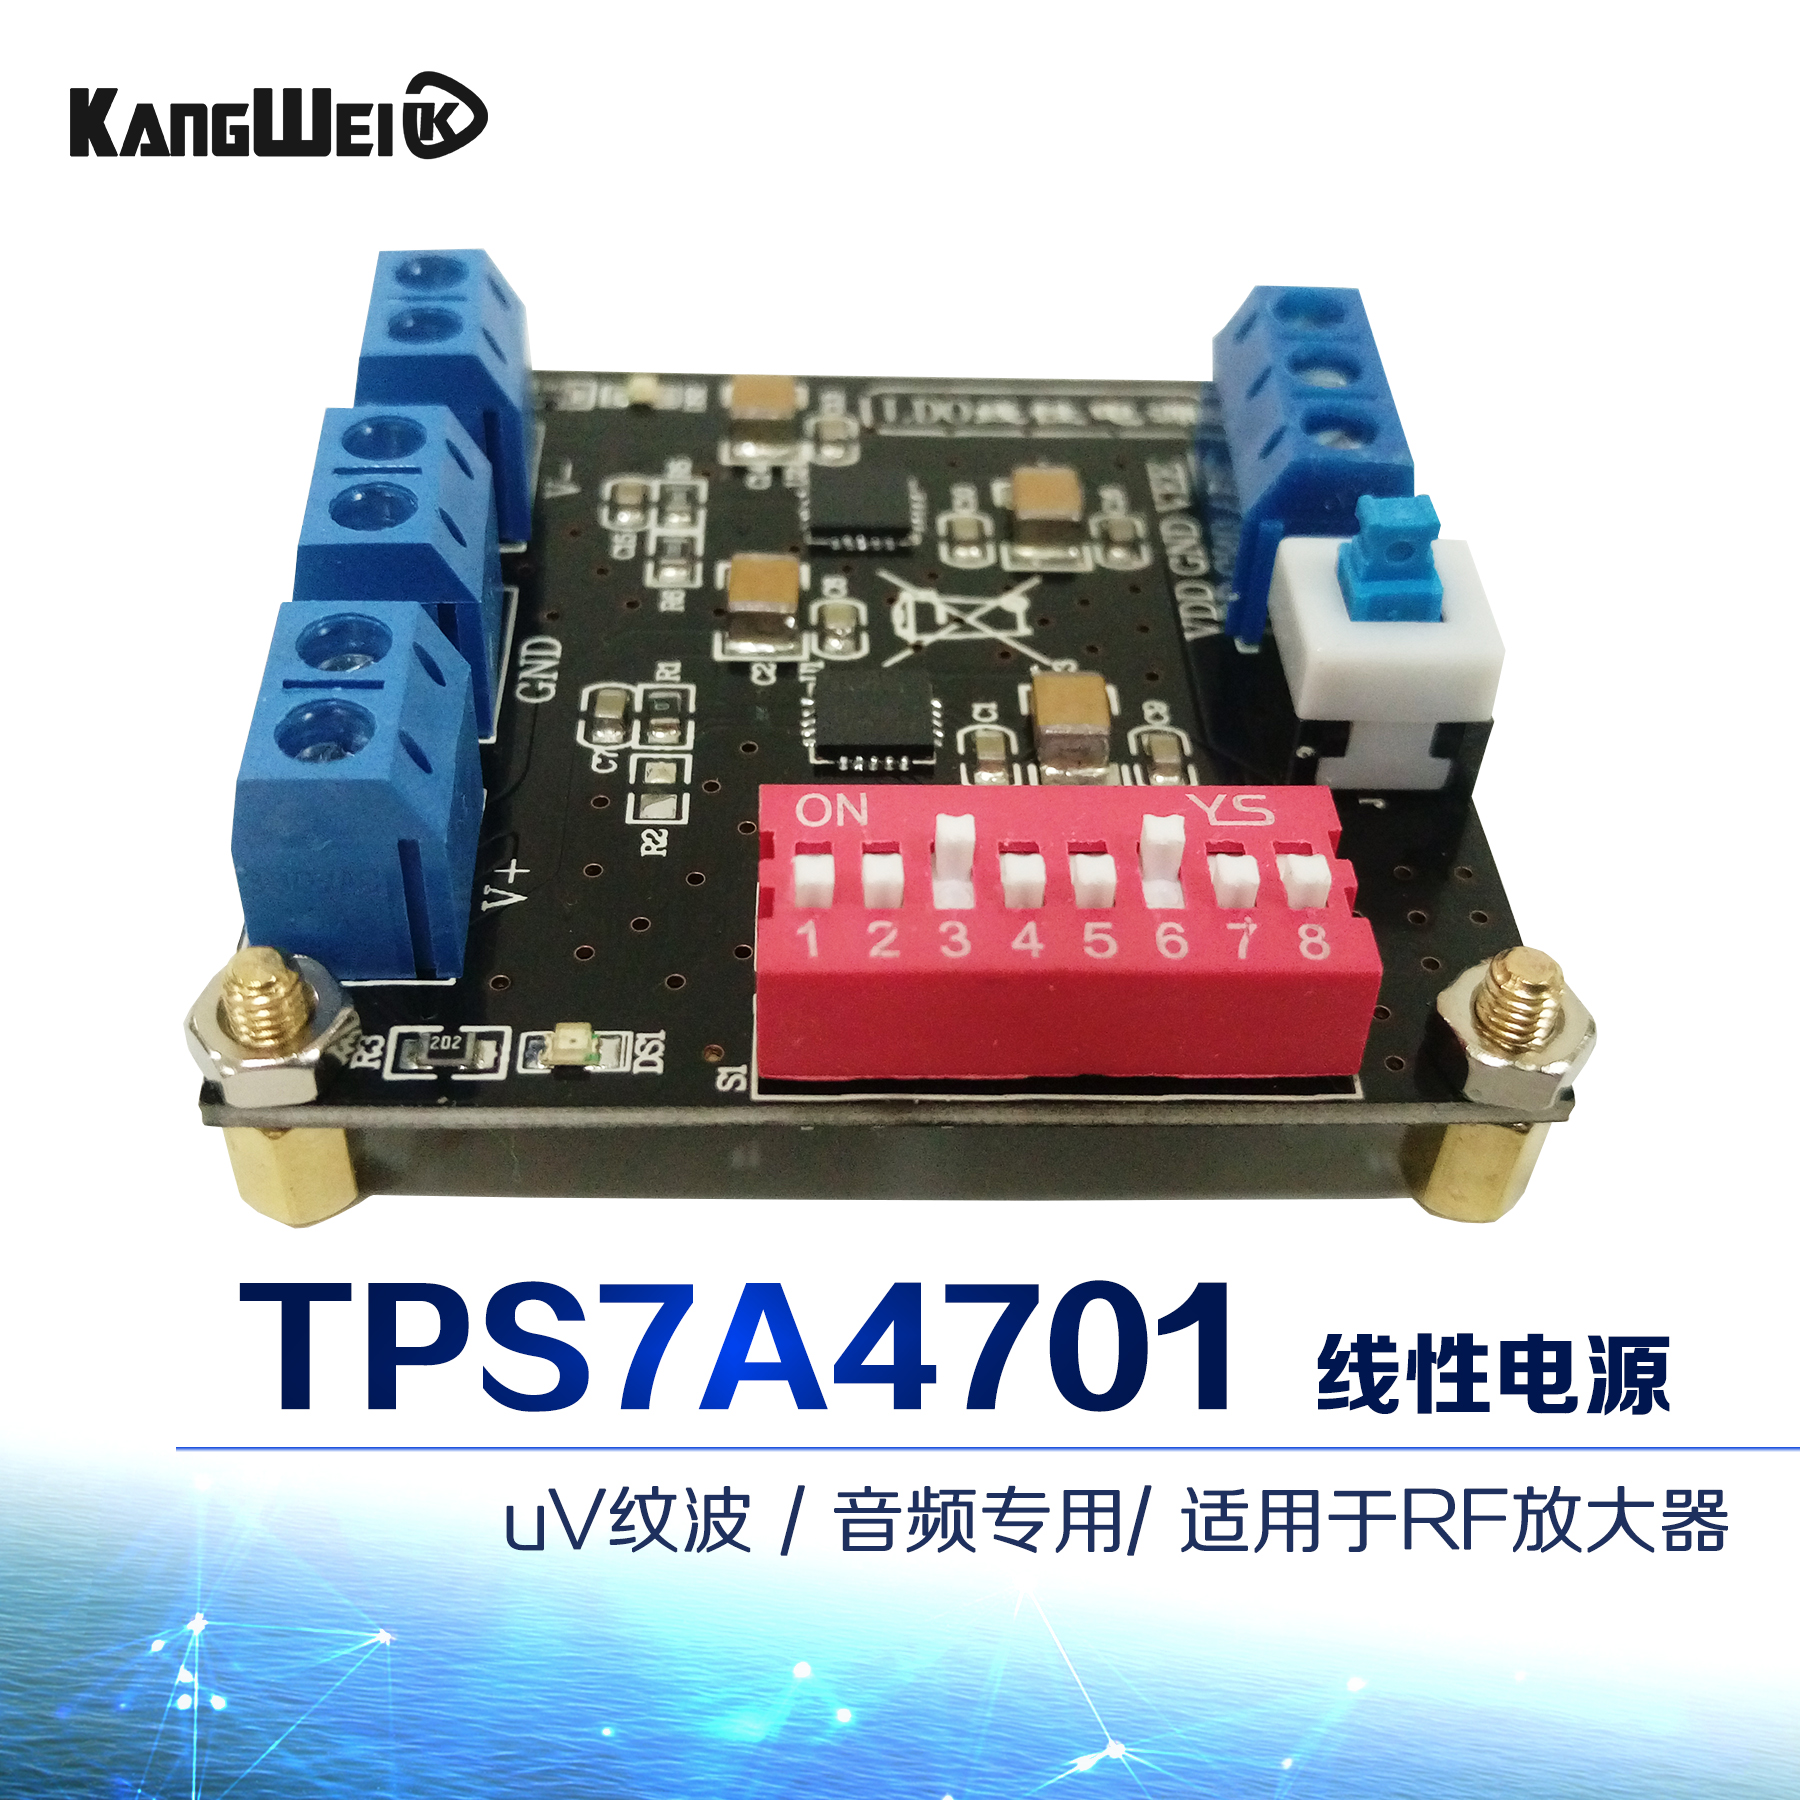 TPS7A4701 TPS7A3301 Ultra Low Ripple Positive and Negative Power UV Ripple Linear Power Supply<br>